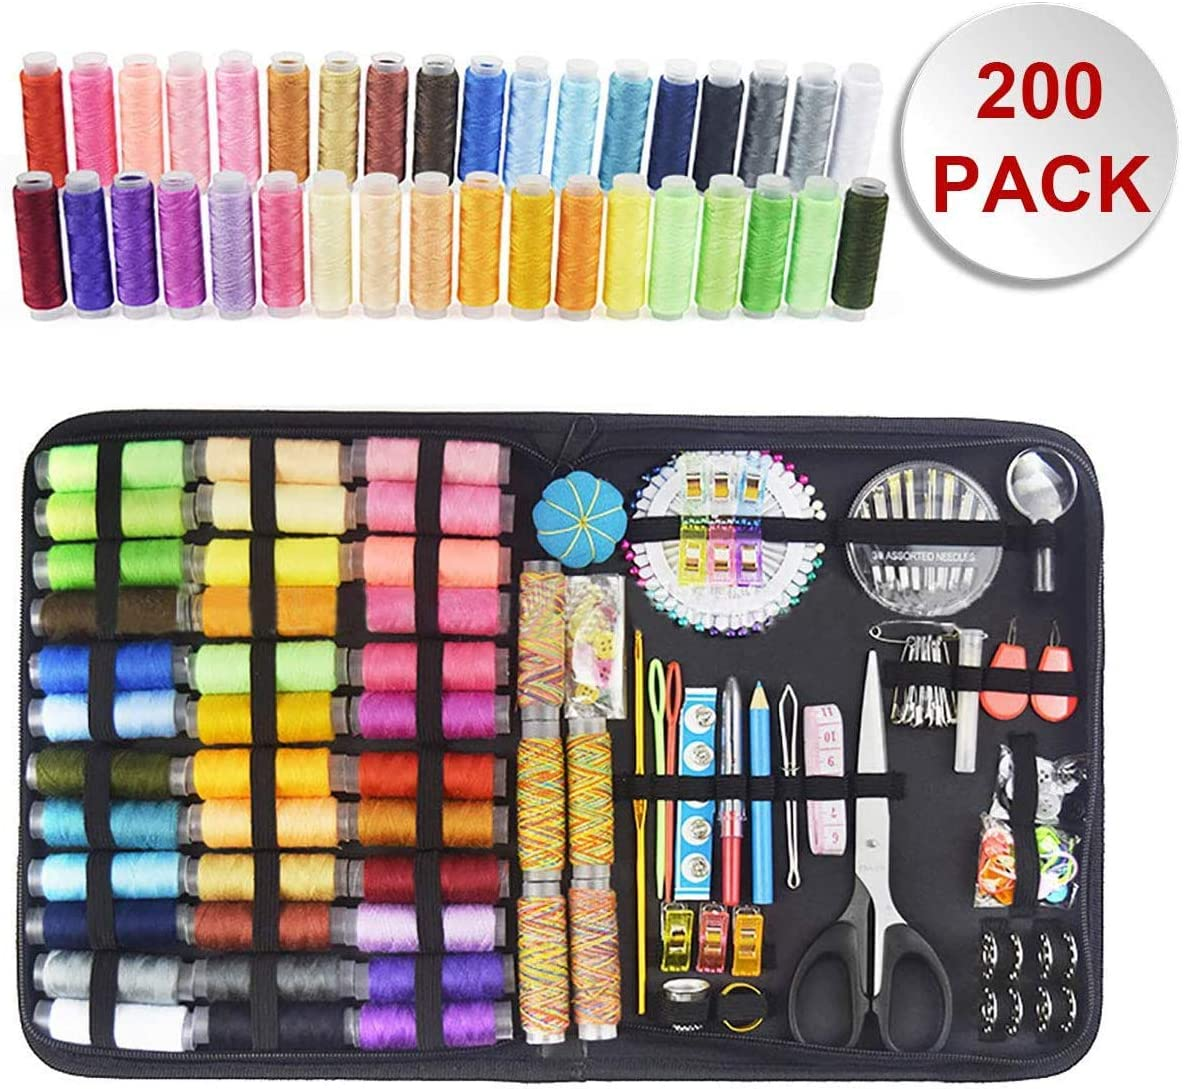 DIY and Family Premium Leisure Accessories and Supplies-41 XL Spools of Thread for Travelers Top-Spring Sewing Kit Beginners Emergency Repairs Children 200 Pcs Portable Travel Sewing Kit Adults